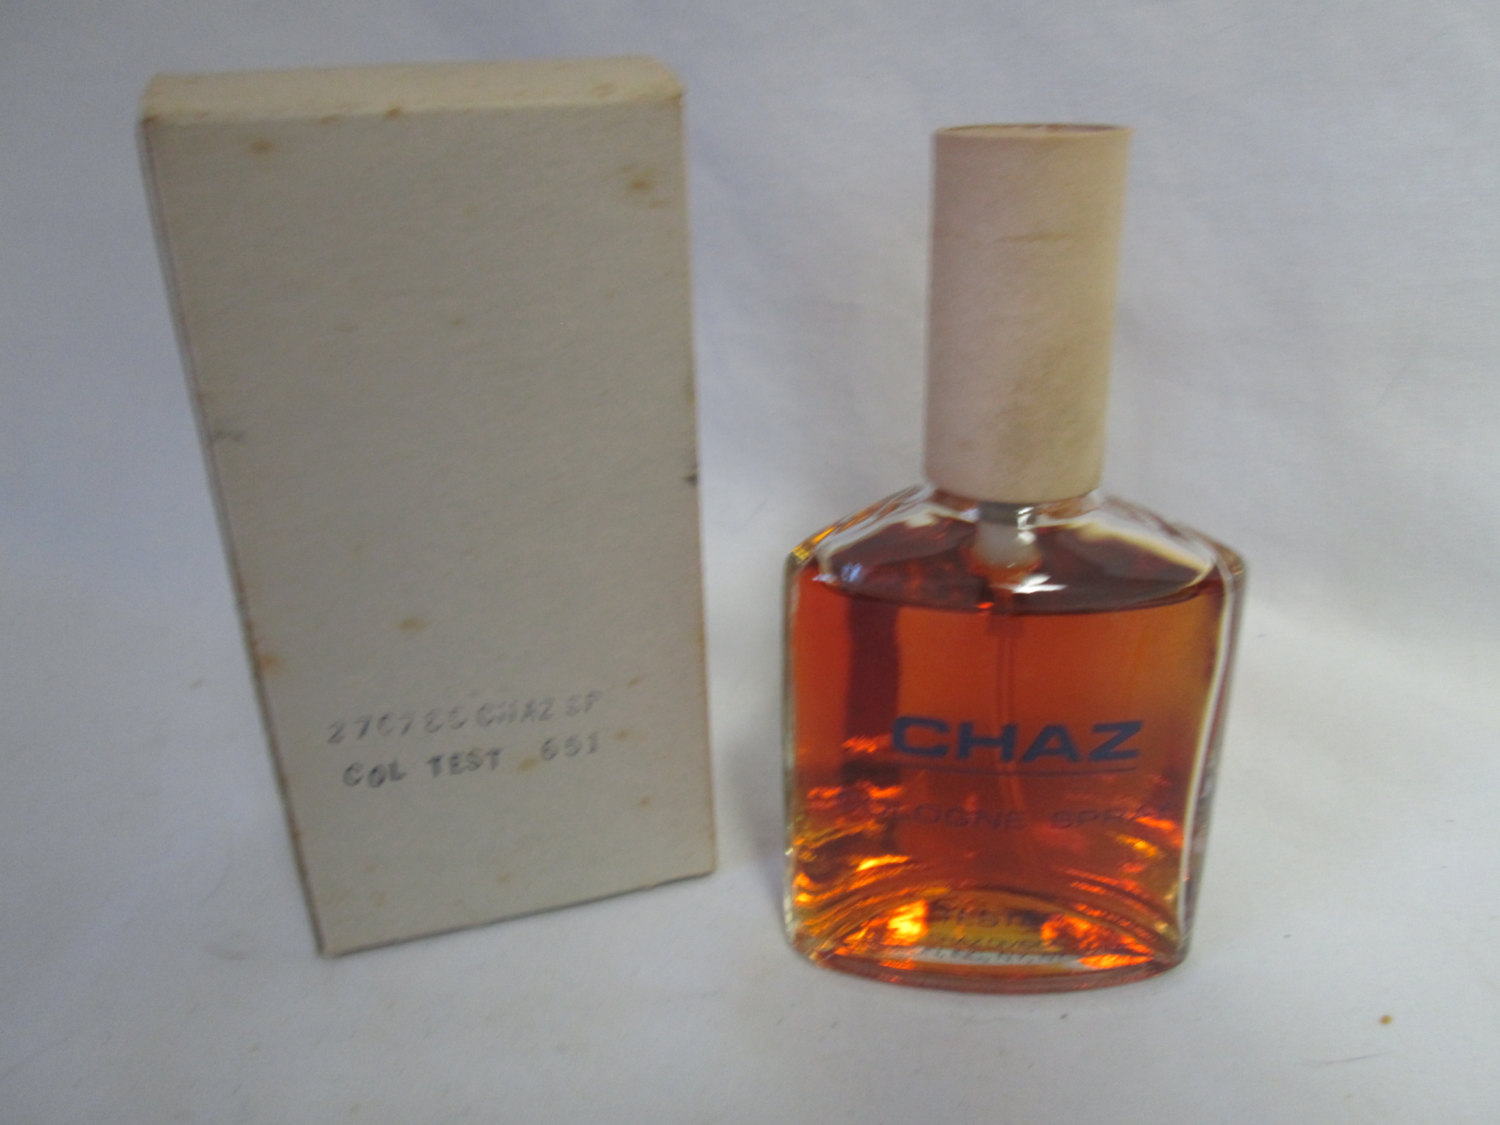 vintage original chaz for men cologne 4 oz tester spray. Black Bedroom Furniture Sets. Home Design Ideas